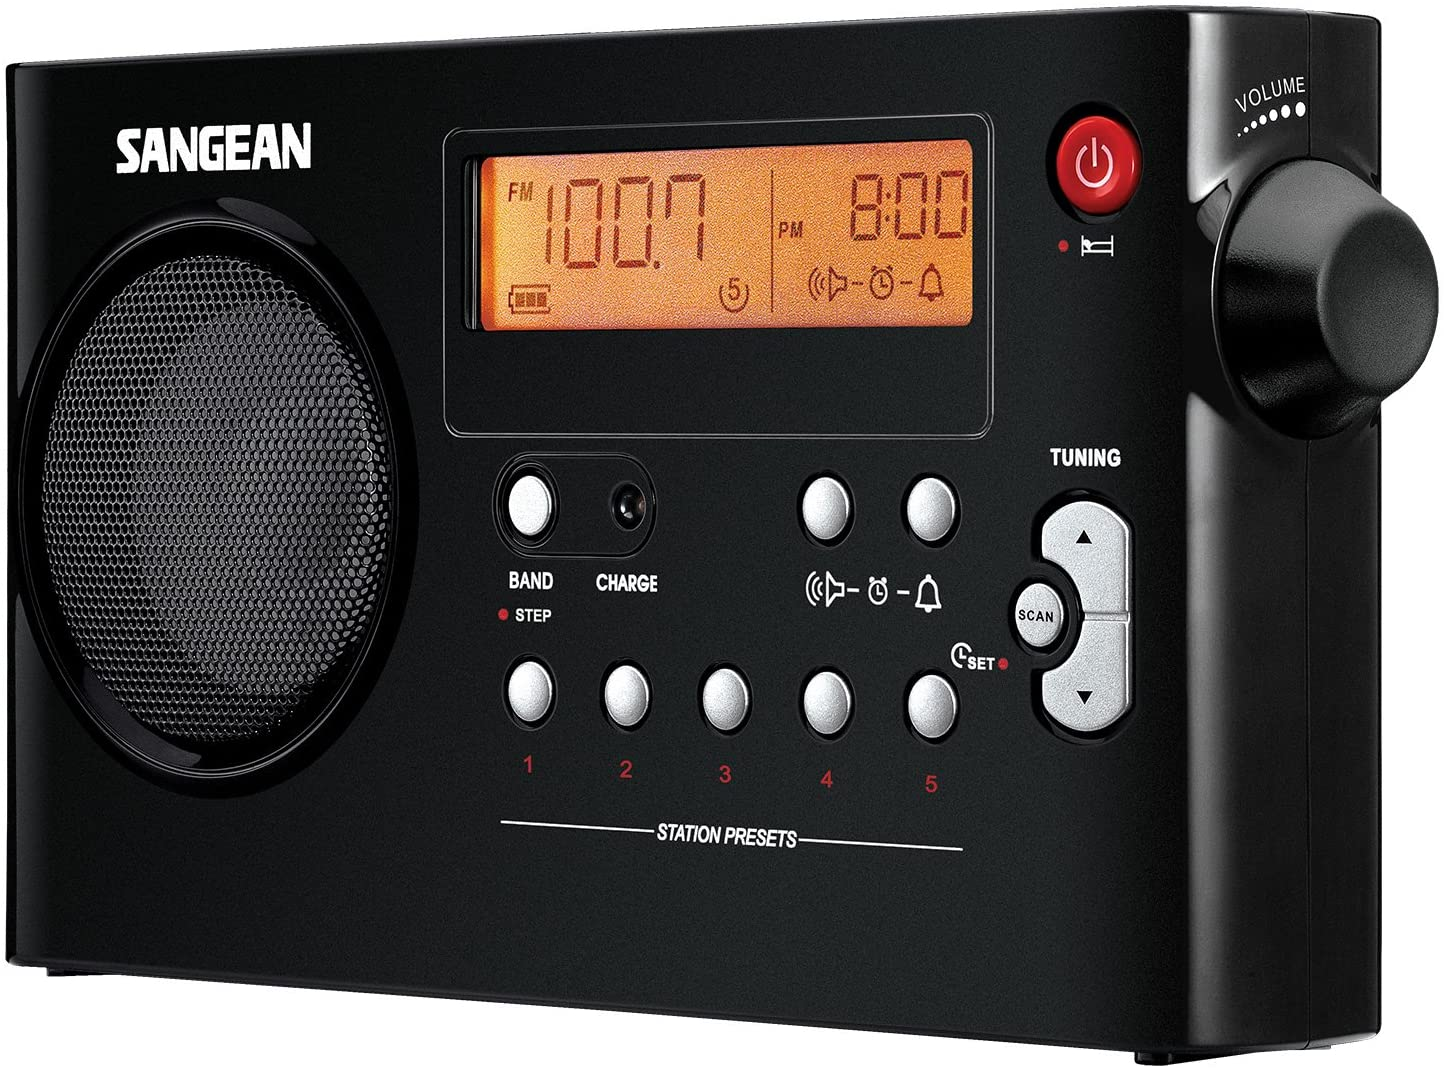 Sangean AM/FM Digital Rechargeable Portable Radio